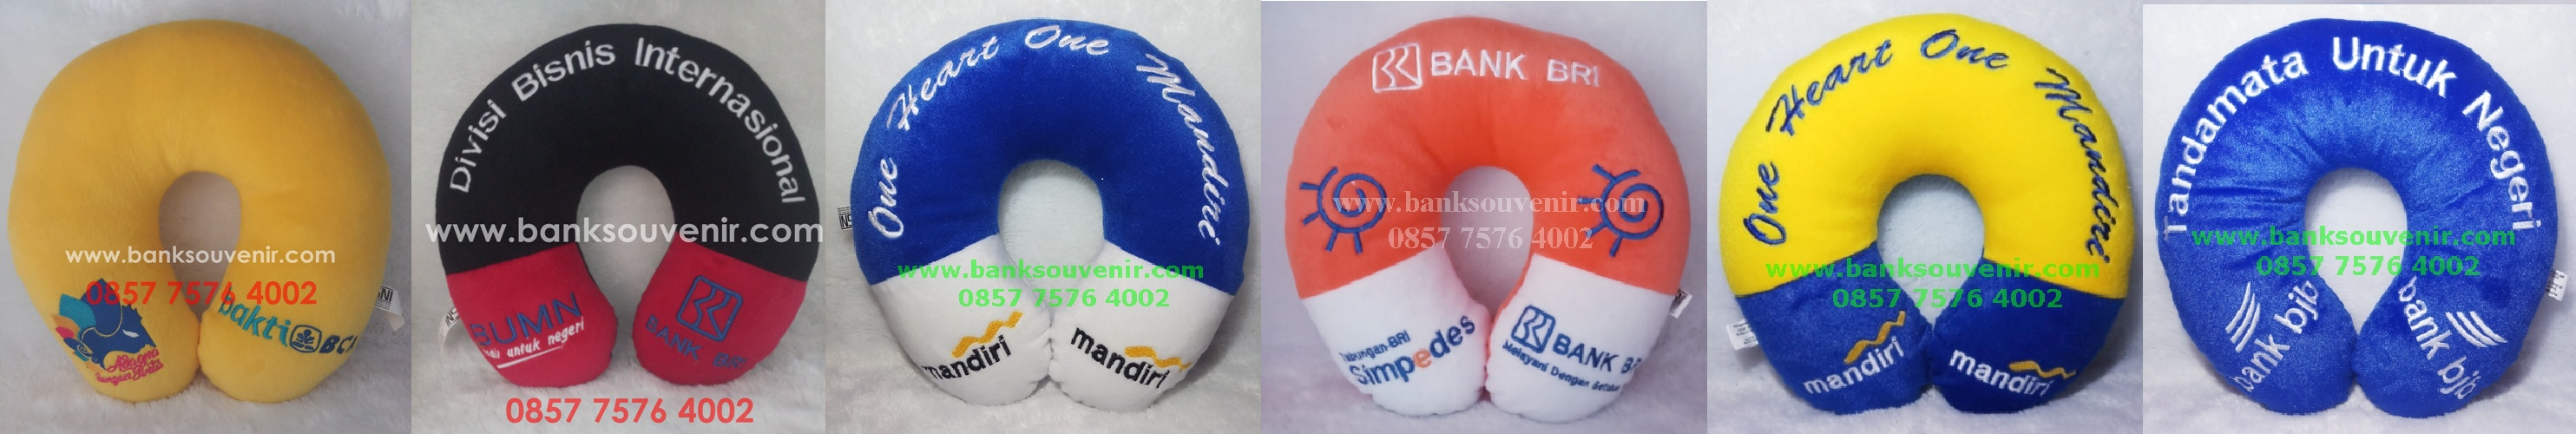 Bantal Leher Souvenir Bank